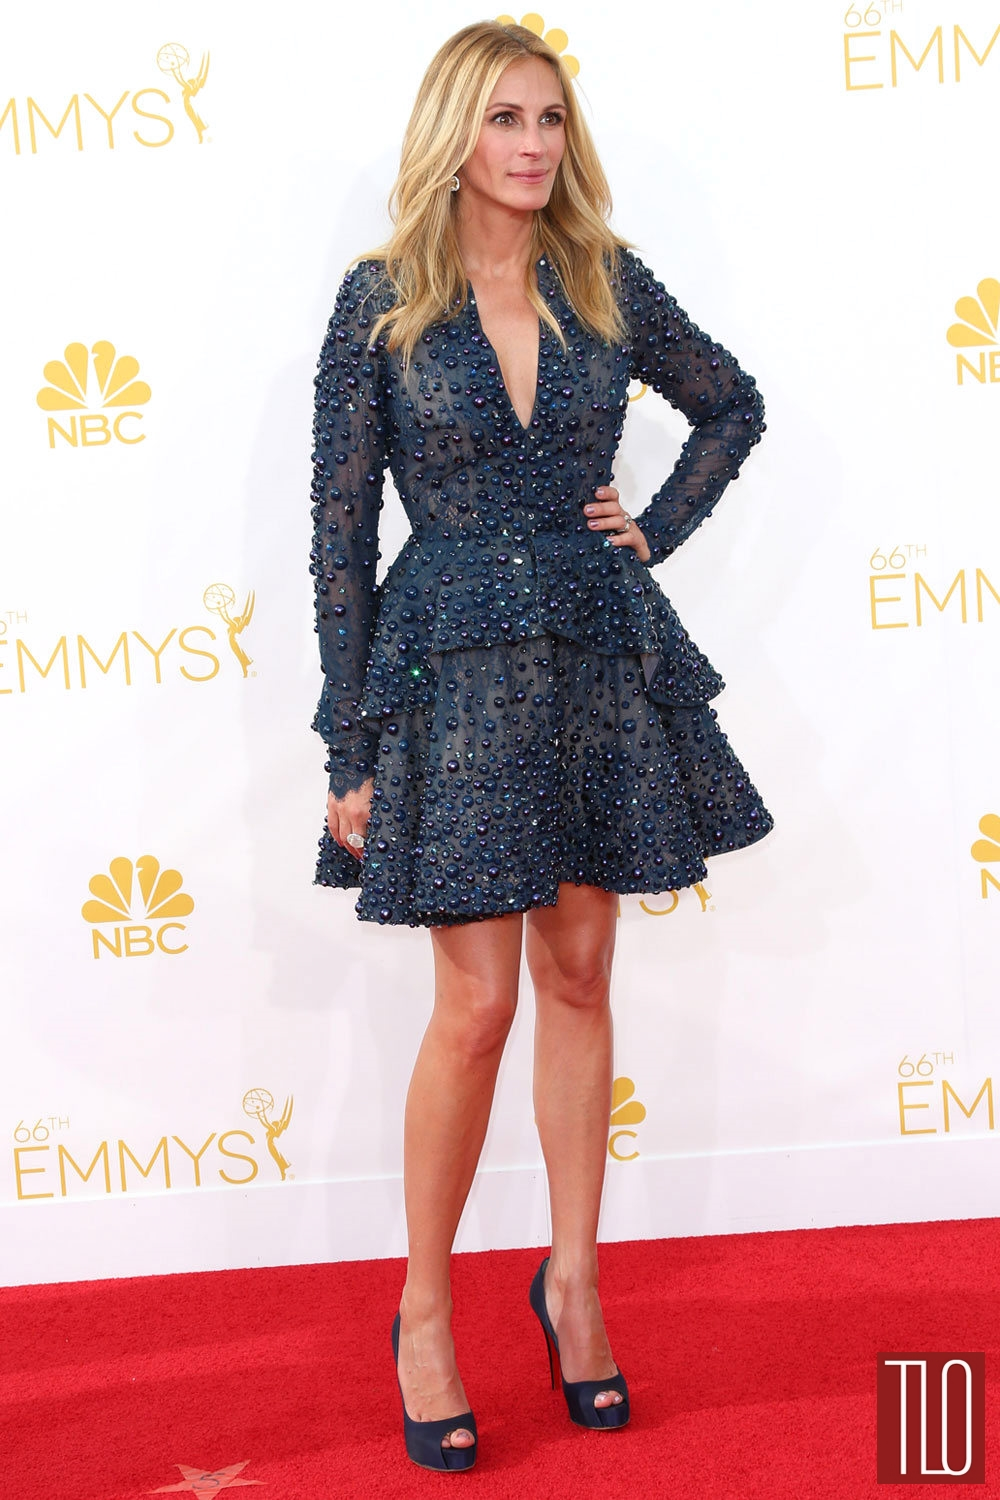 Julia-Roberts-2014-Emmy-Awards-Elie-Saab-Couture-Red-Carpet-Tom-Lorenzo-Site-TLO (1)